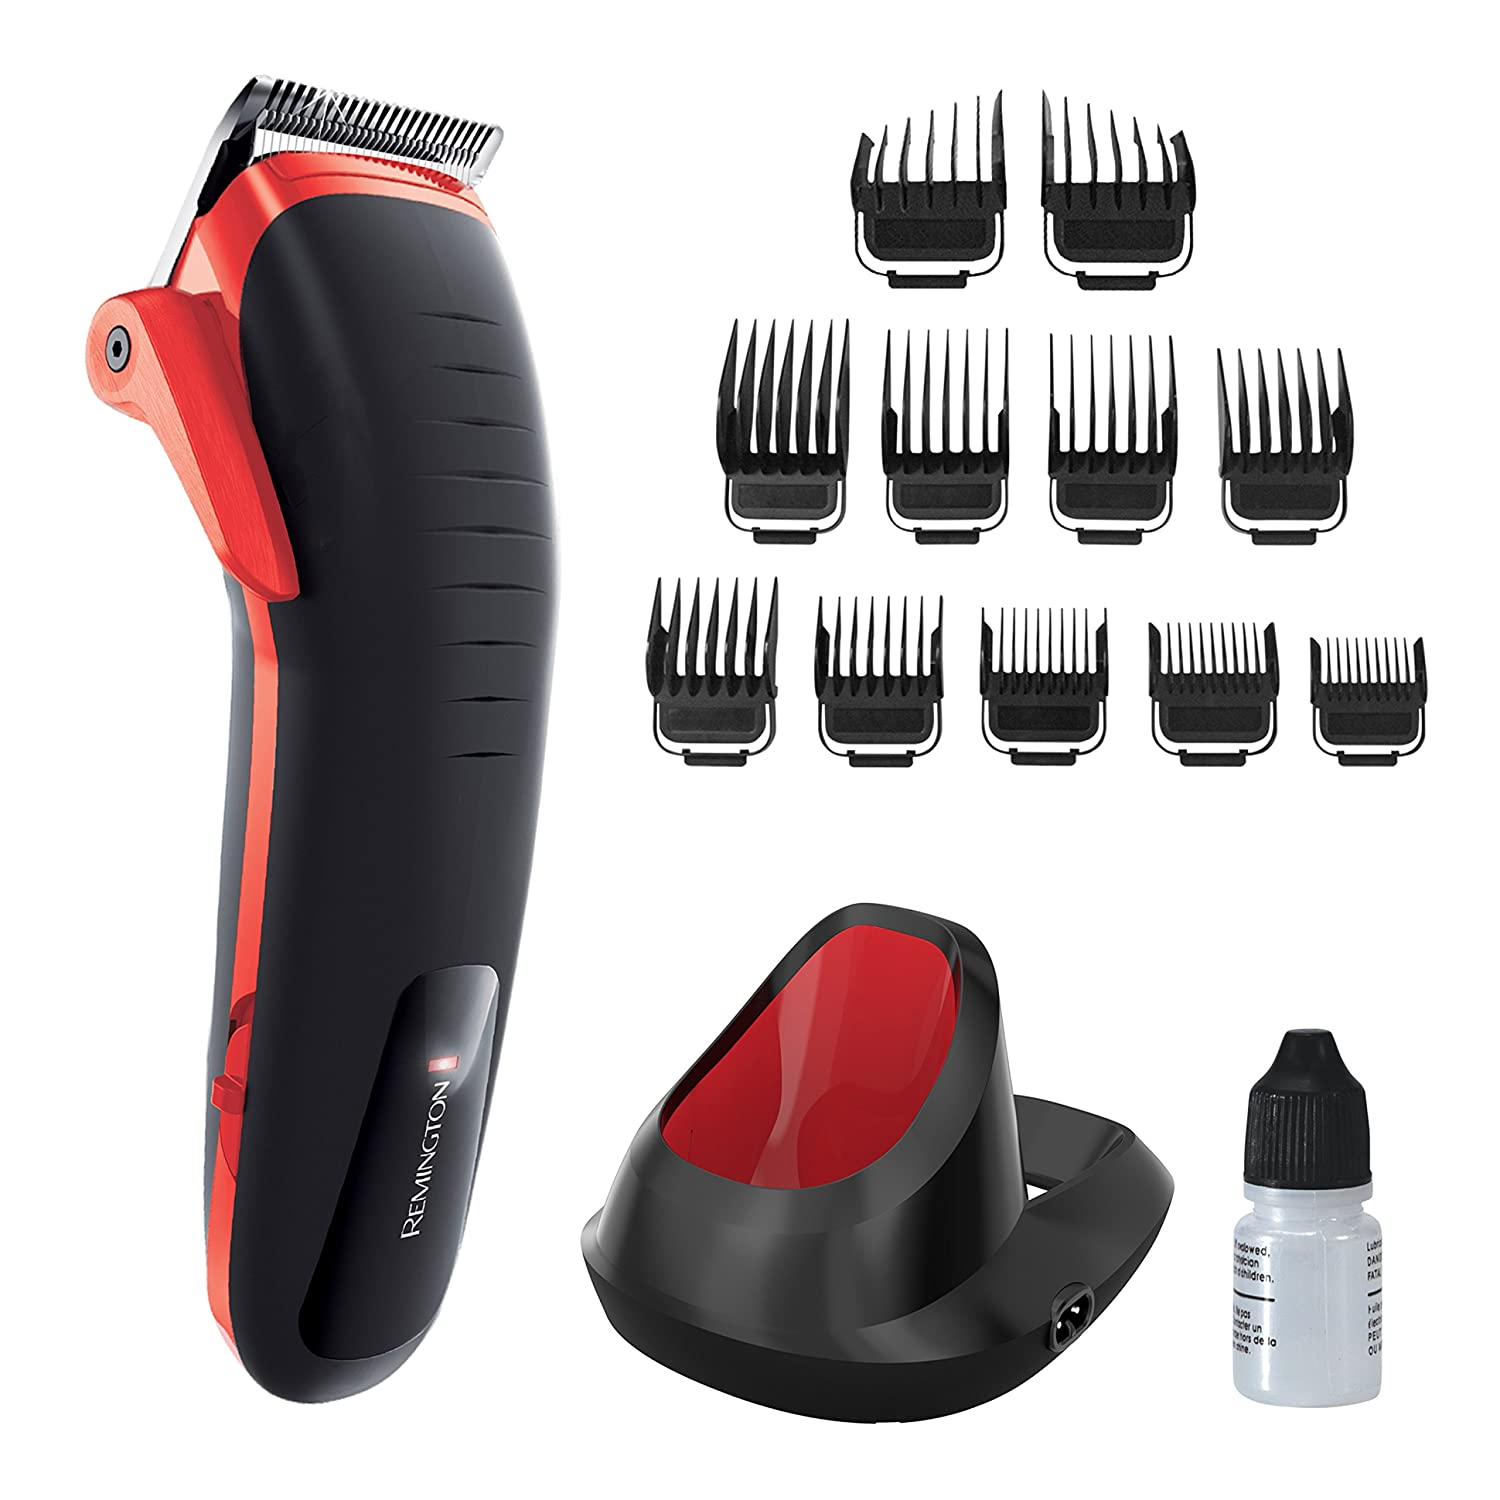 Remington Salon Collection Ultimate Performance Hair Clipper, Black, HC9700